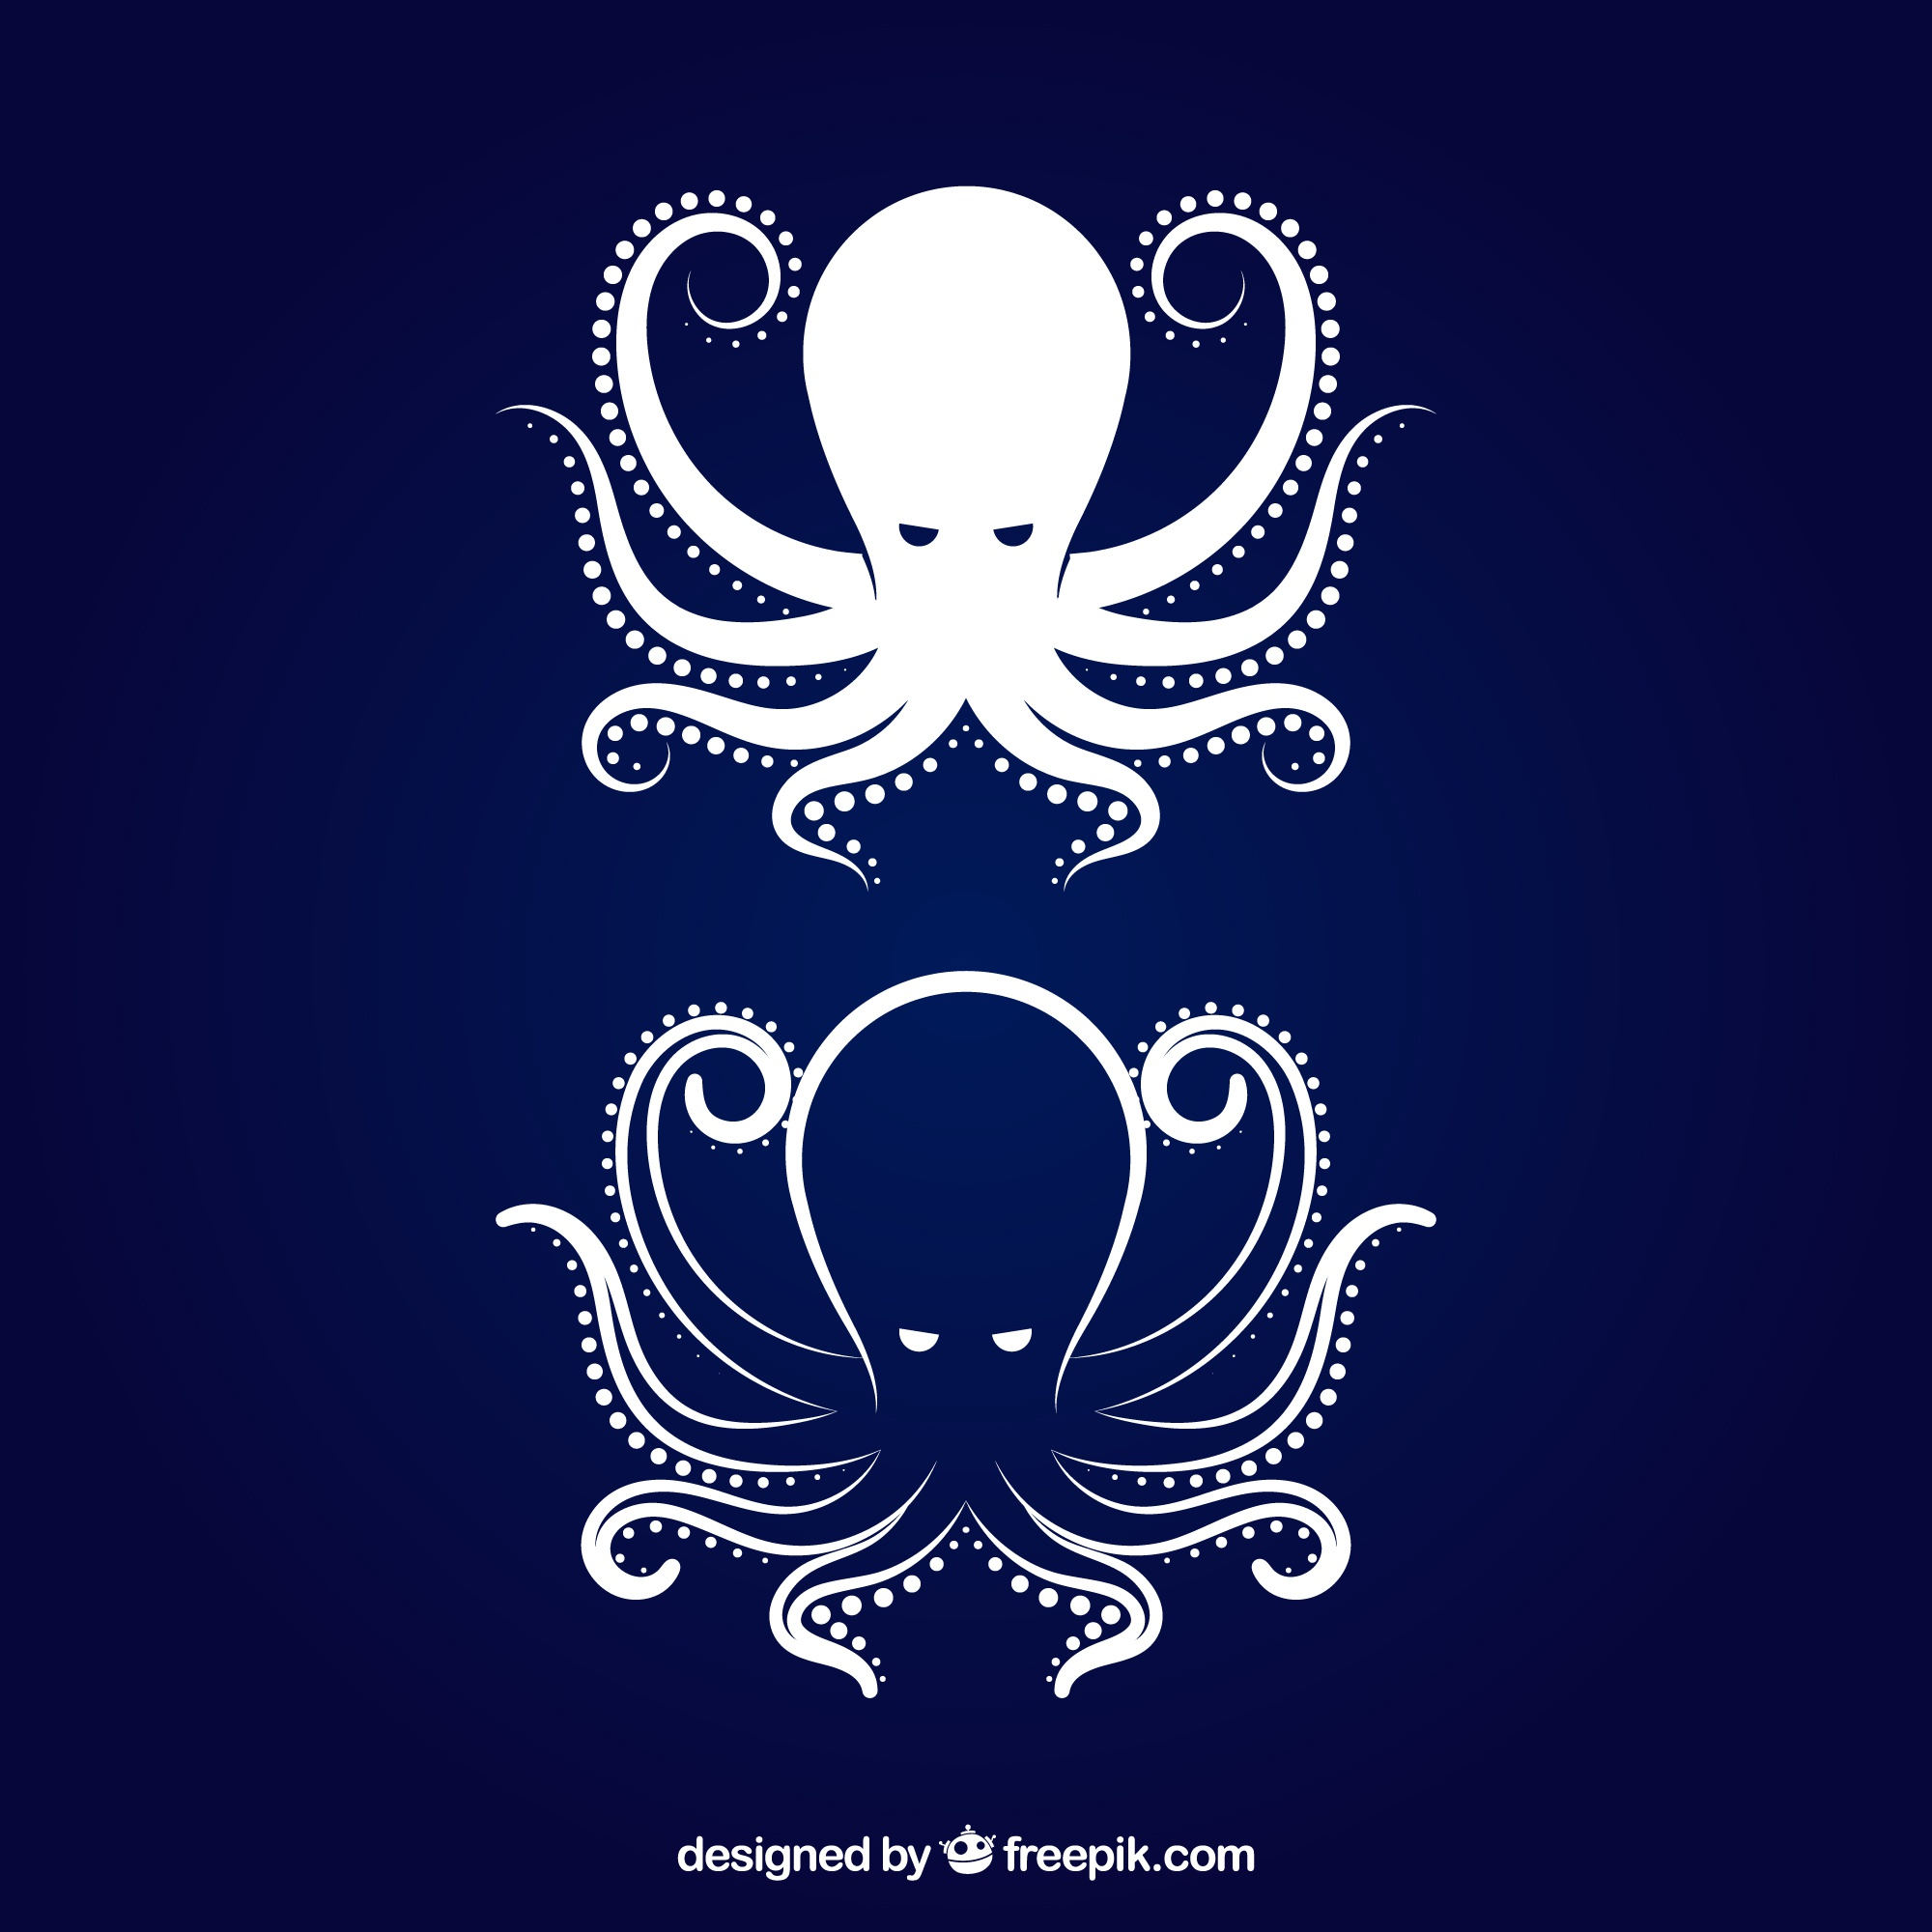 Octopus icon